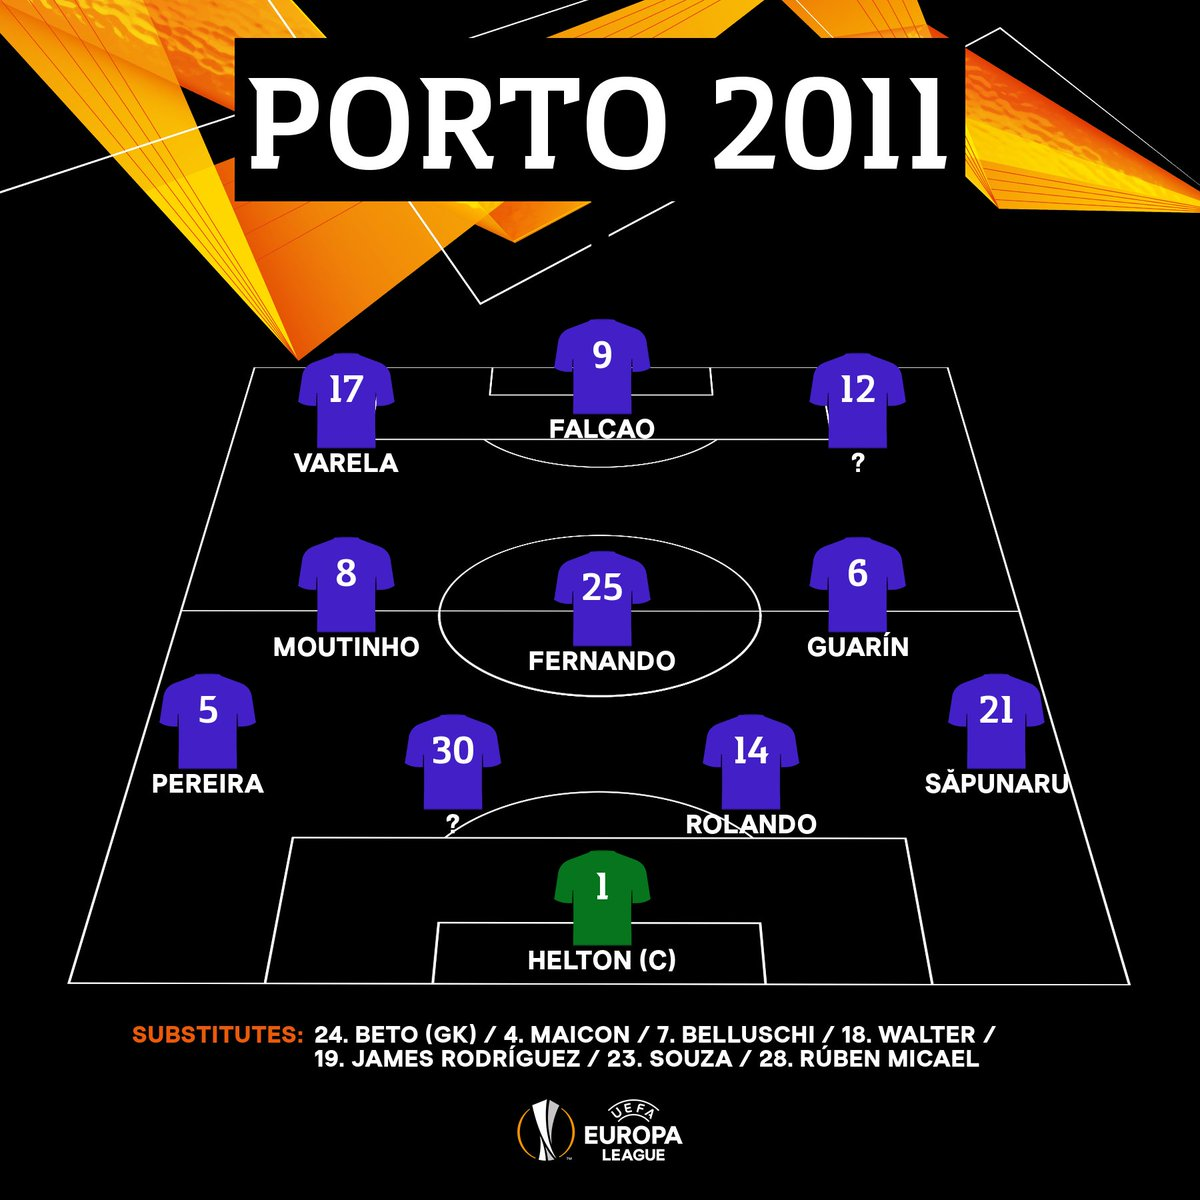 Porto's 2011 winners   Who's missing?   #UEL   #ThrowbackThursday<br>http://pic.twitter.com/Gw1K6hoU32